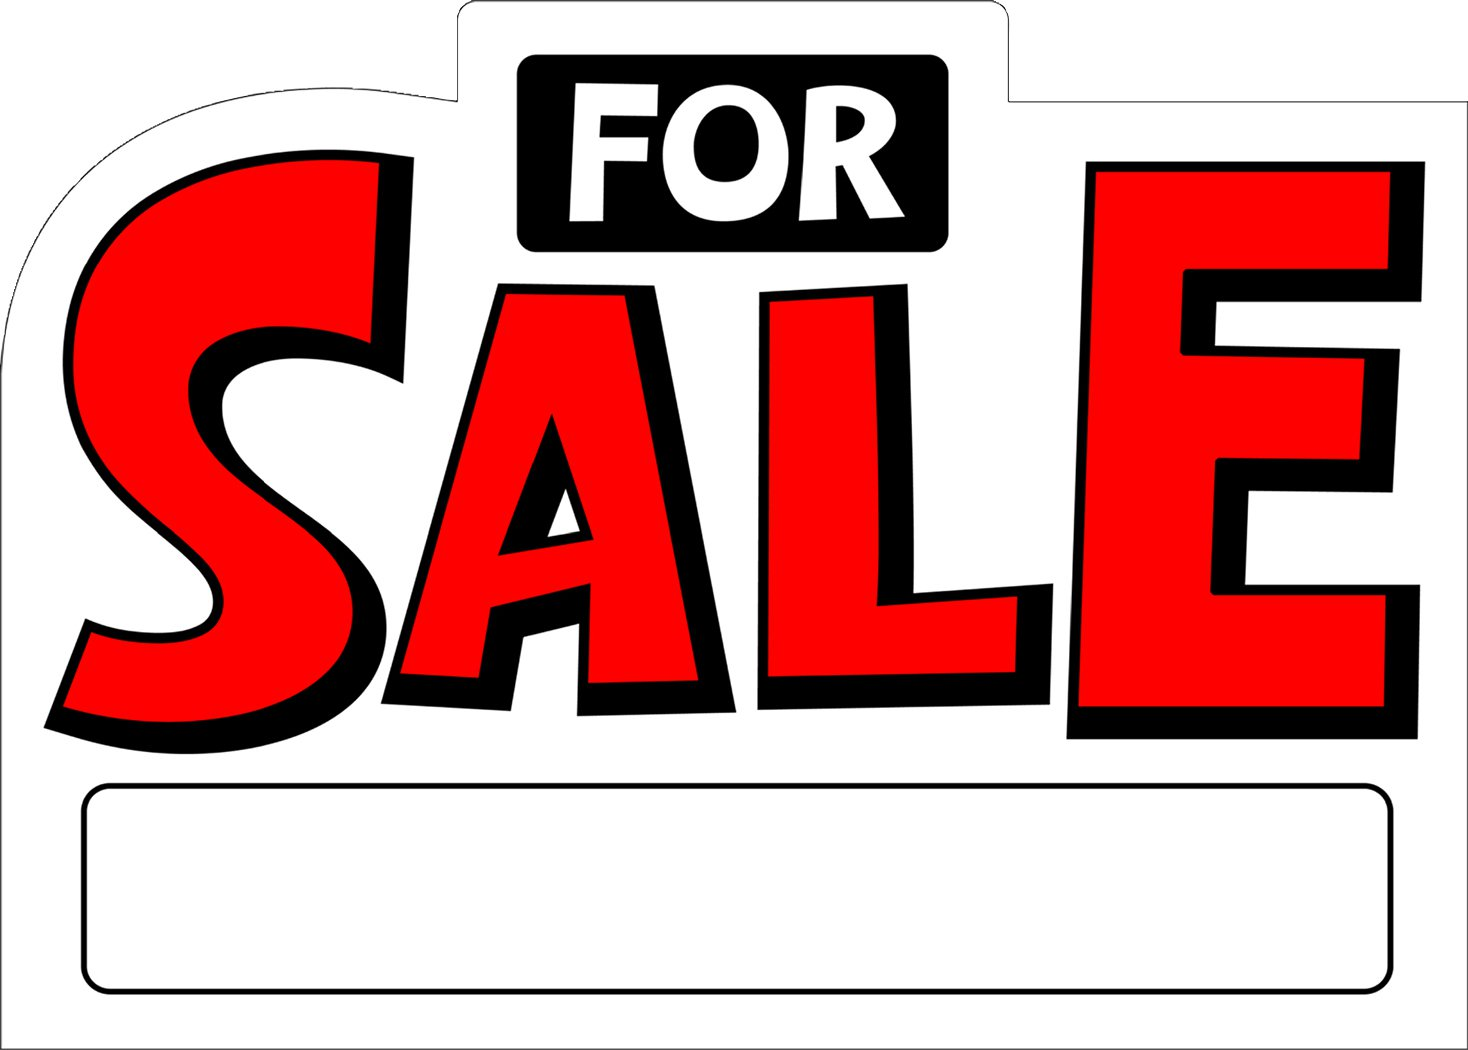 The Hillman Group For Sale Sign 843469